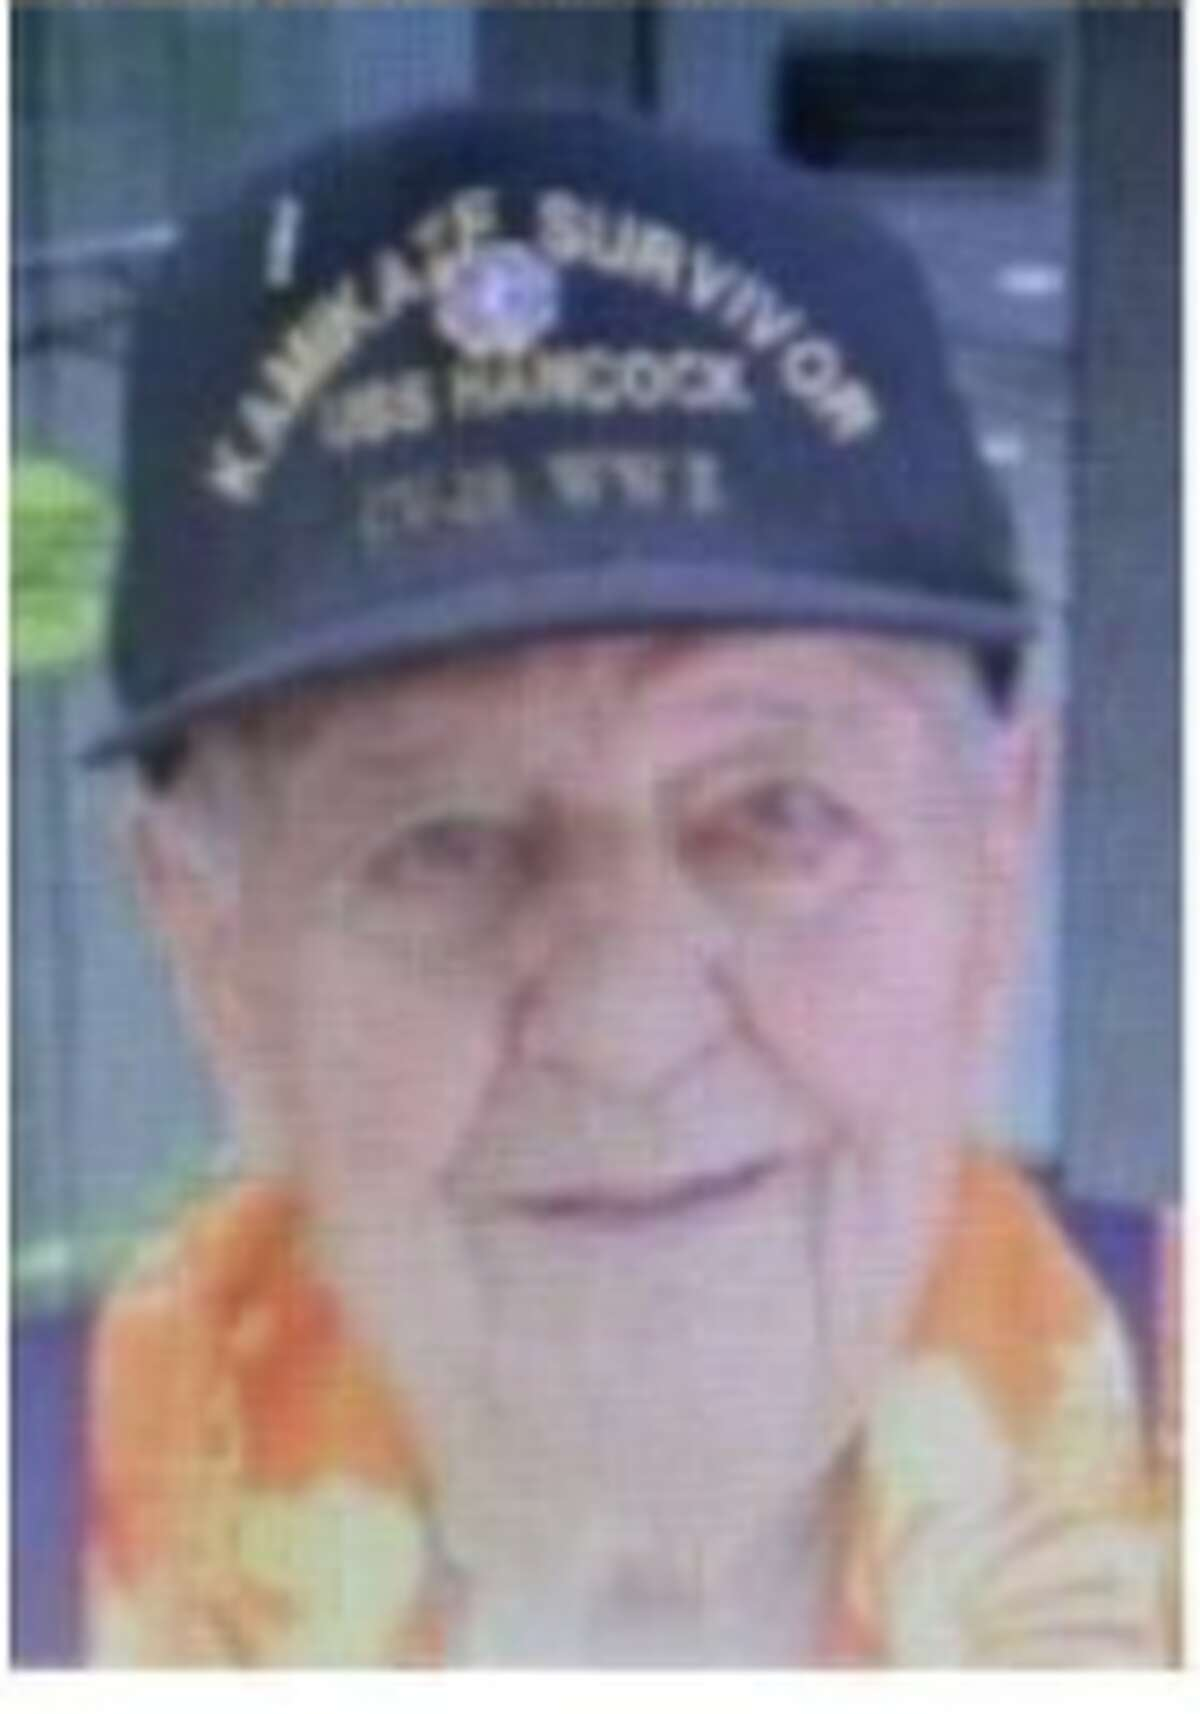 Edward Taylor, 94, was found dead Saturday evening after going missing for about 24 hours.